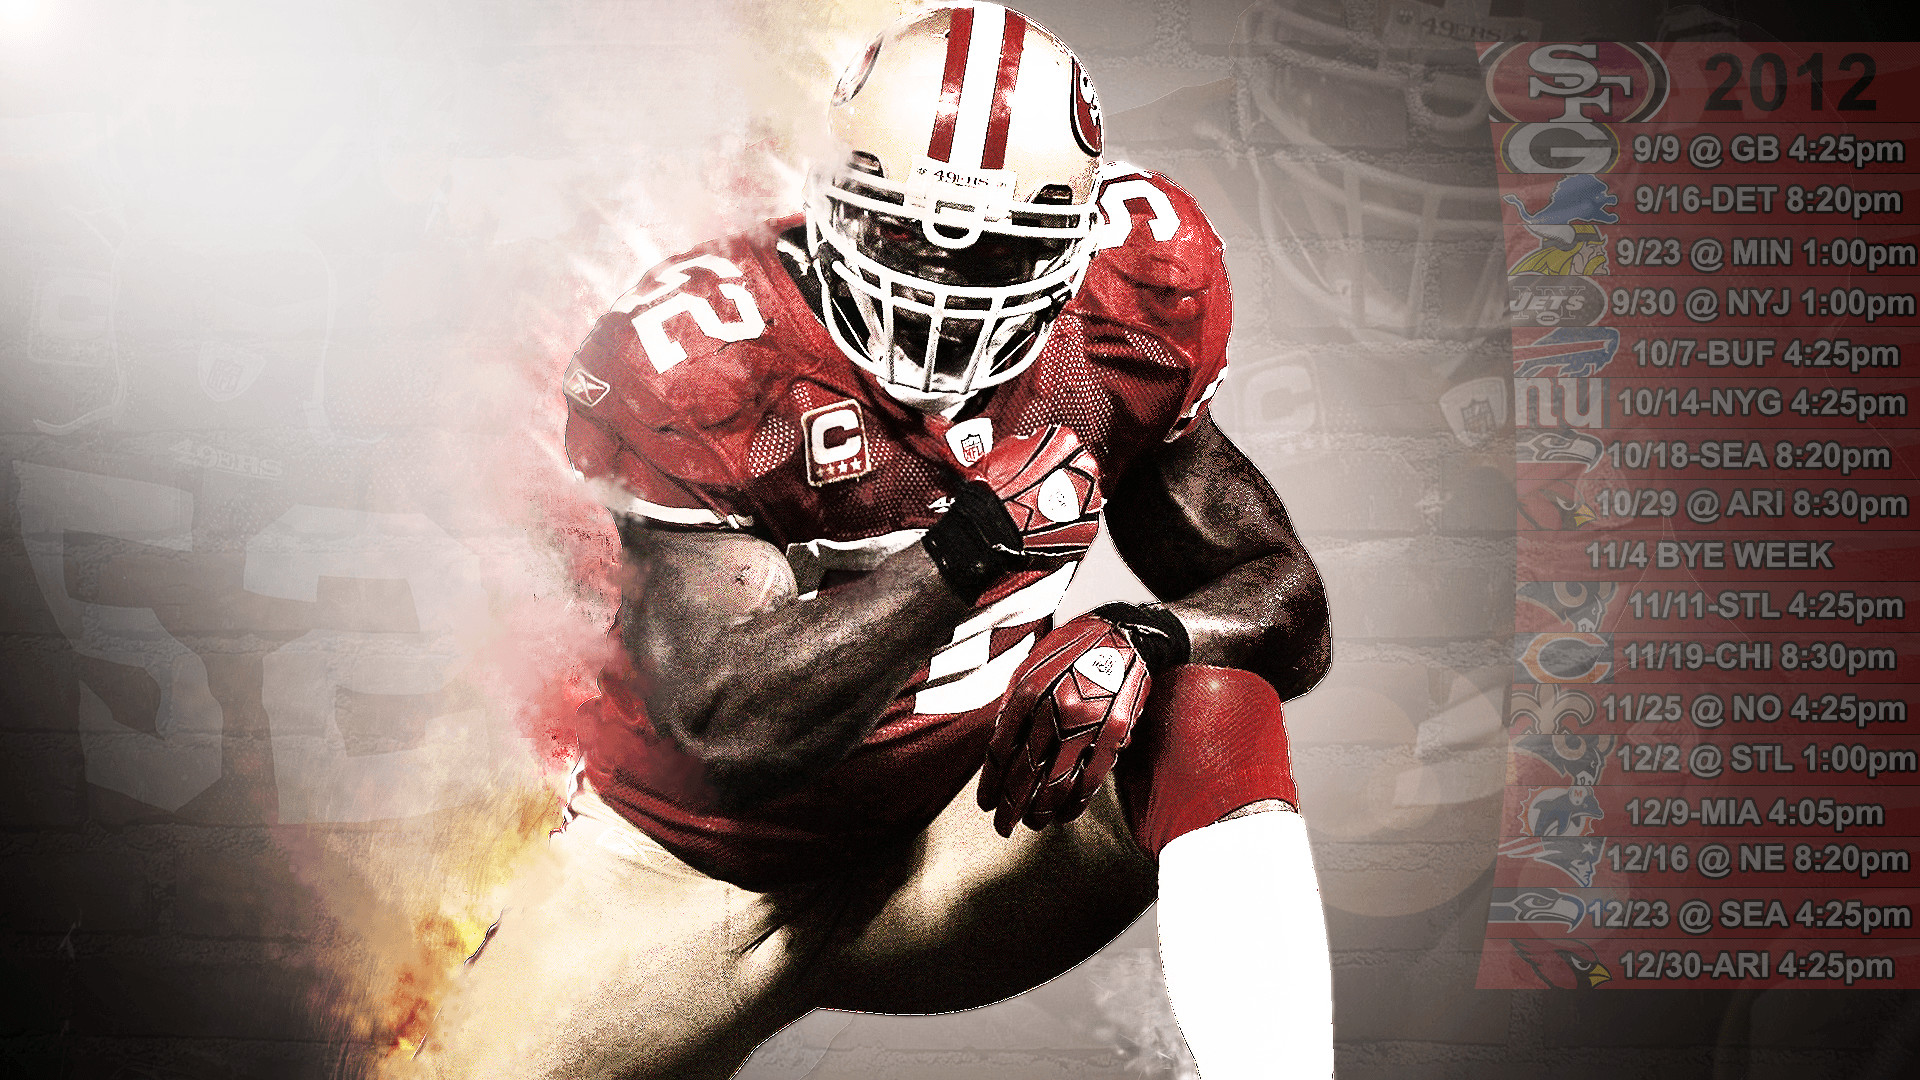 1920x1080 Get ready for the season by downloading the new 49ers schedule wallpapers for your desktop or mobile.